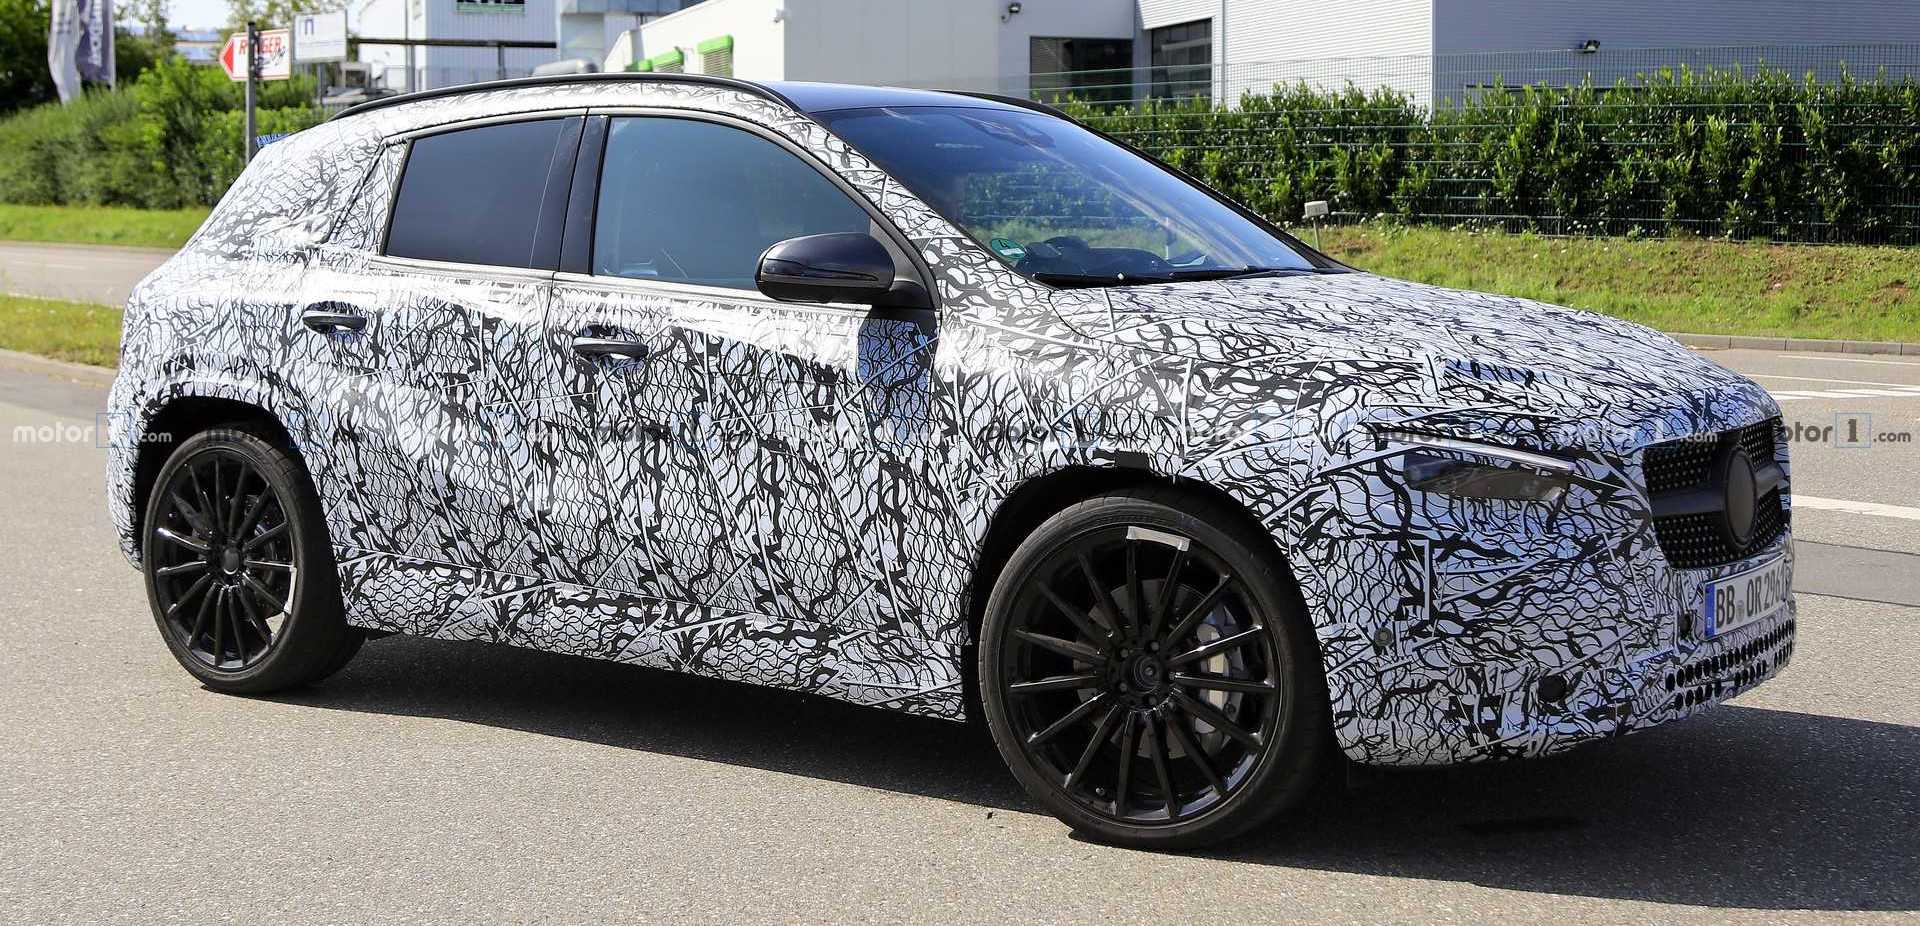 2021 Mercedes-AMG GLA 35, GLA 45 Spied For The First Time